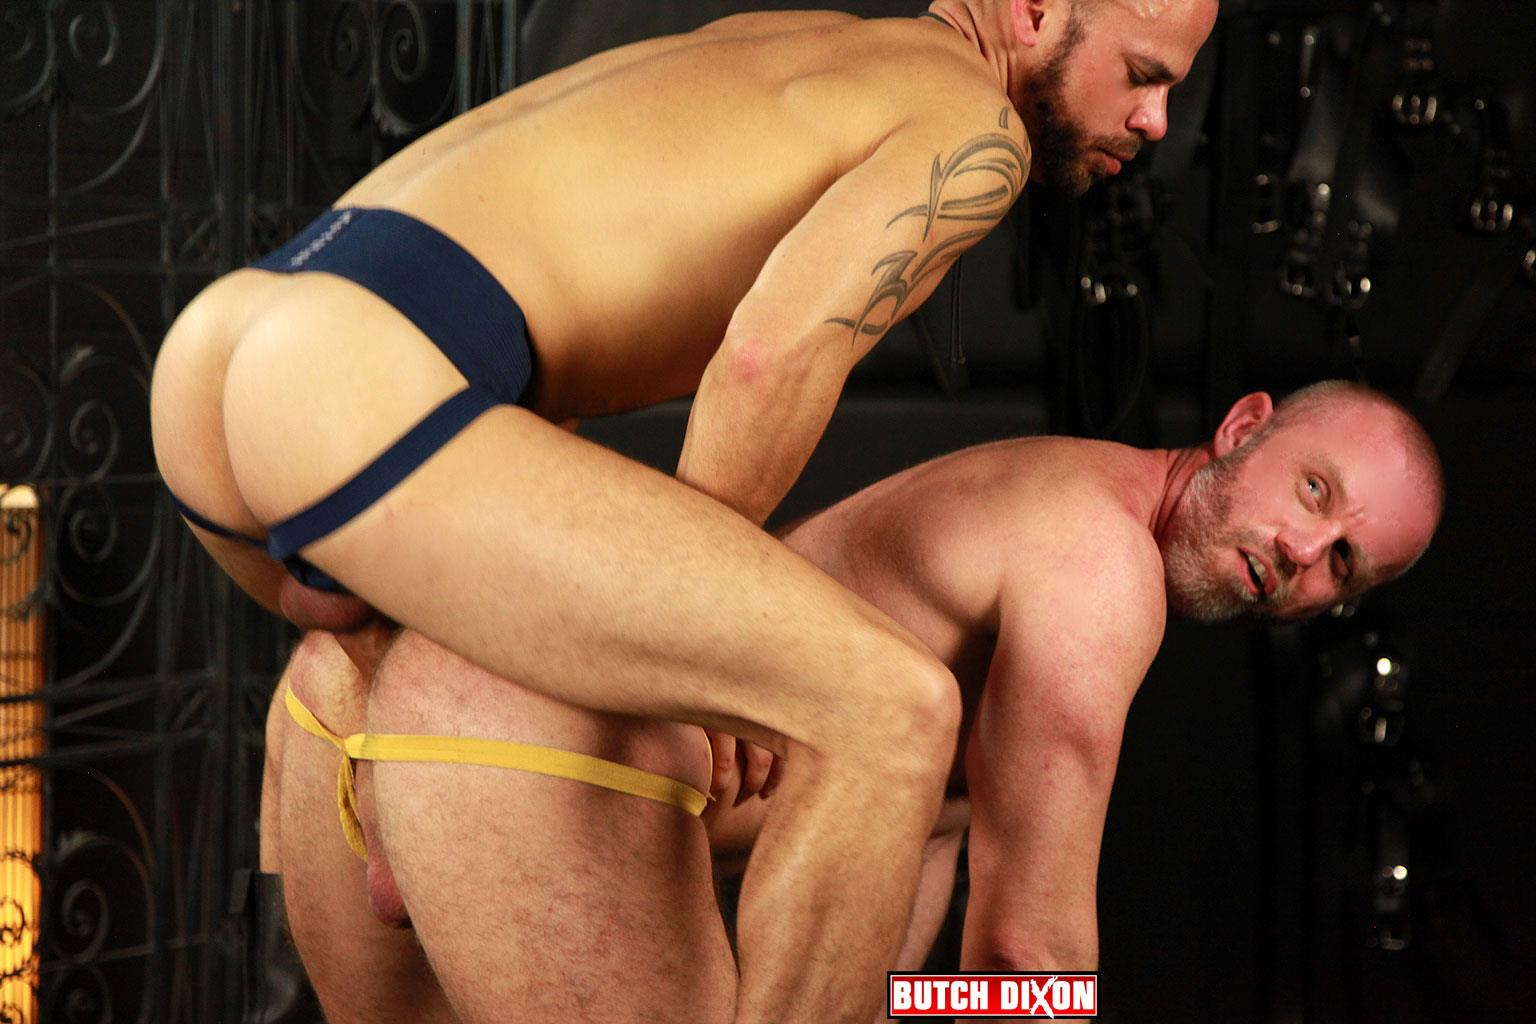 Butch-Dixon-Delta-Kobra-and-Freddy-Miller-Barebacking-A-Hairy-Daddy-BBBH-Amateur-Gay-Porn-10 Delta Kobra Barebacking A Hairy Daddy With His Big Uncut Cock